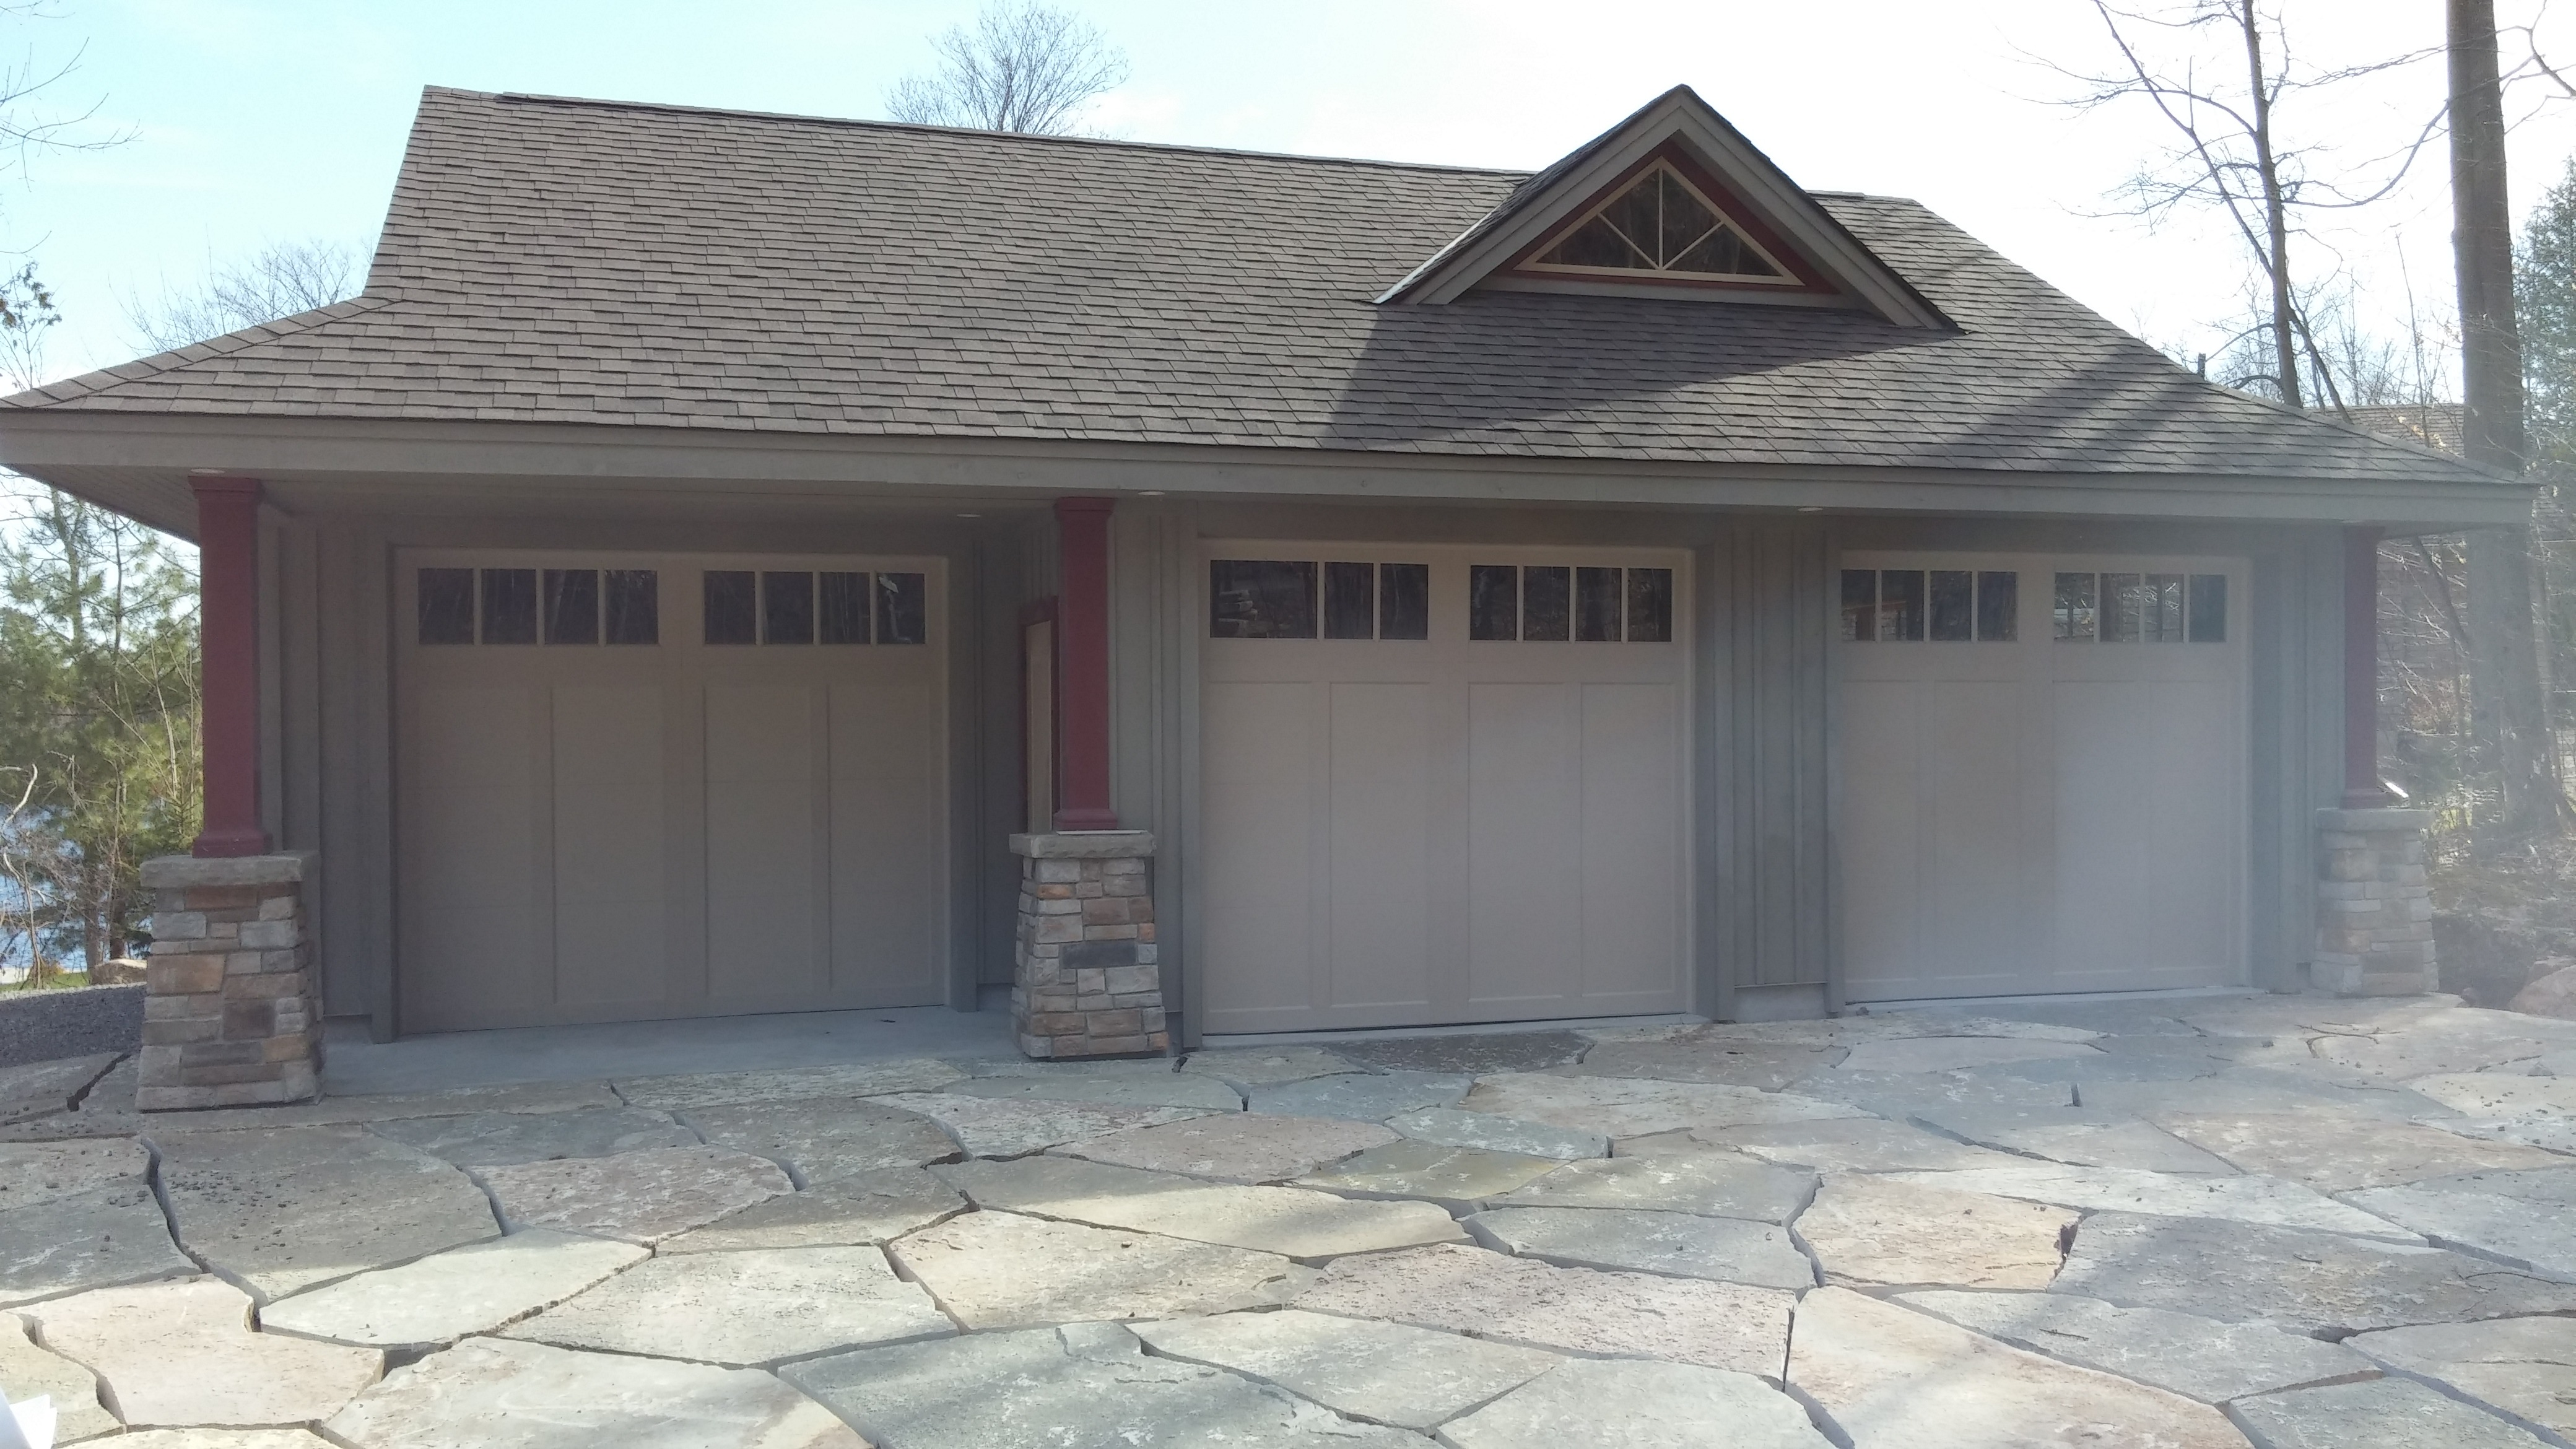 Modern functional garages increasingly in demand throughout